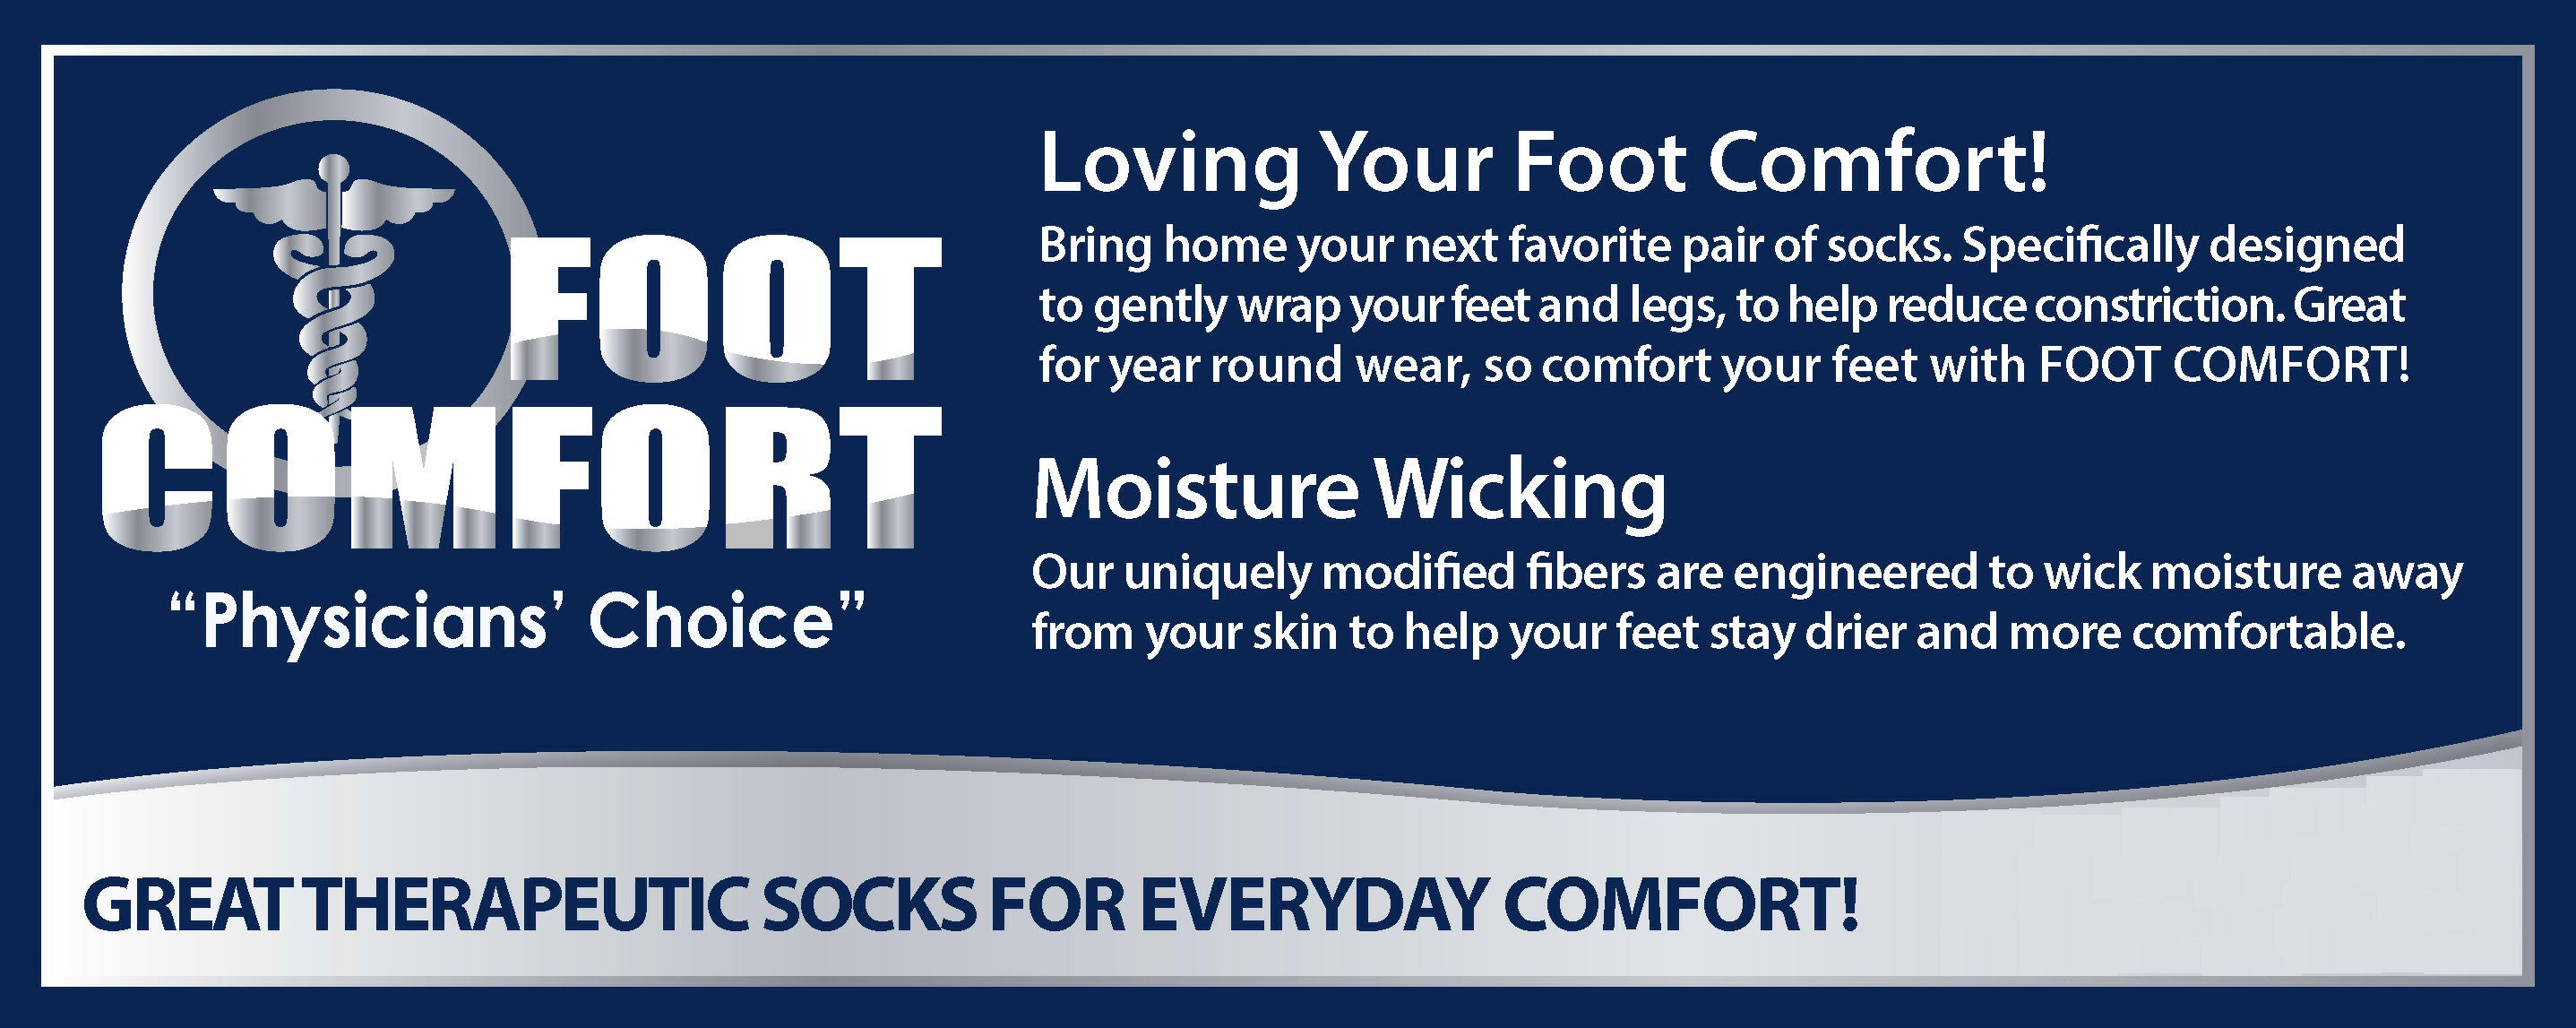 Foot Comfort Diabetic Care White Quarter Socks